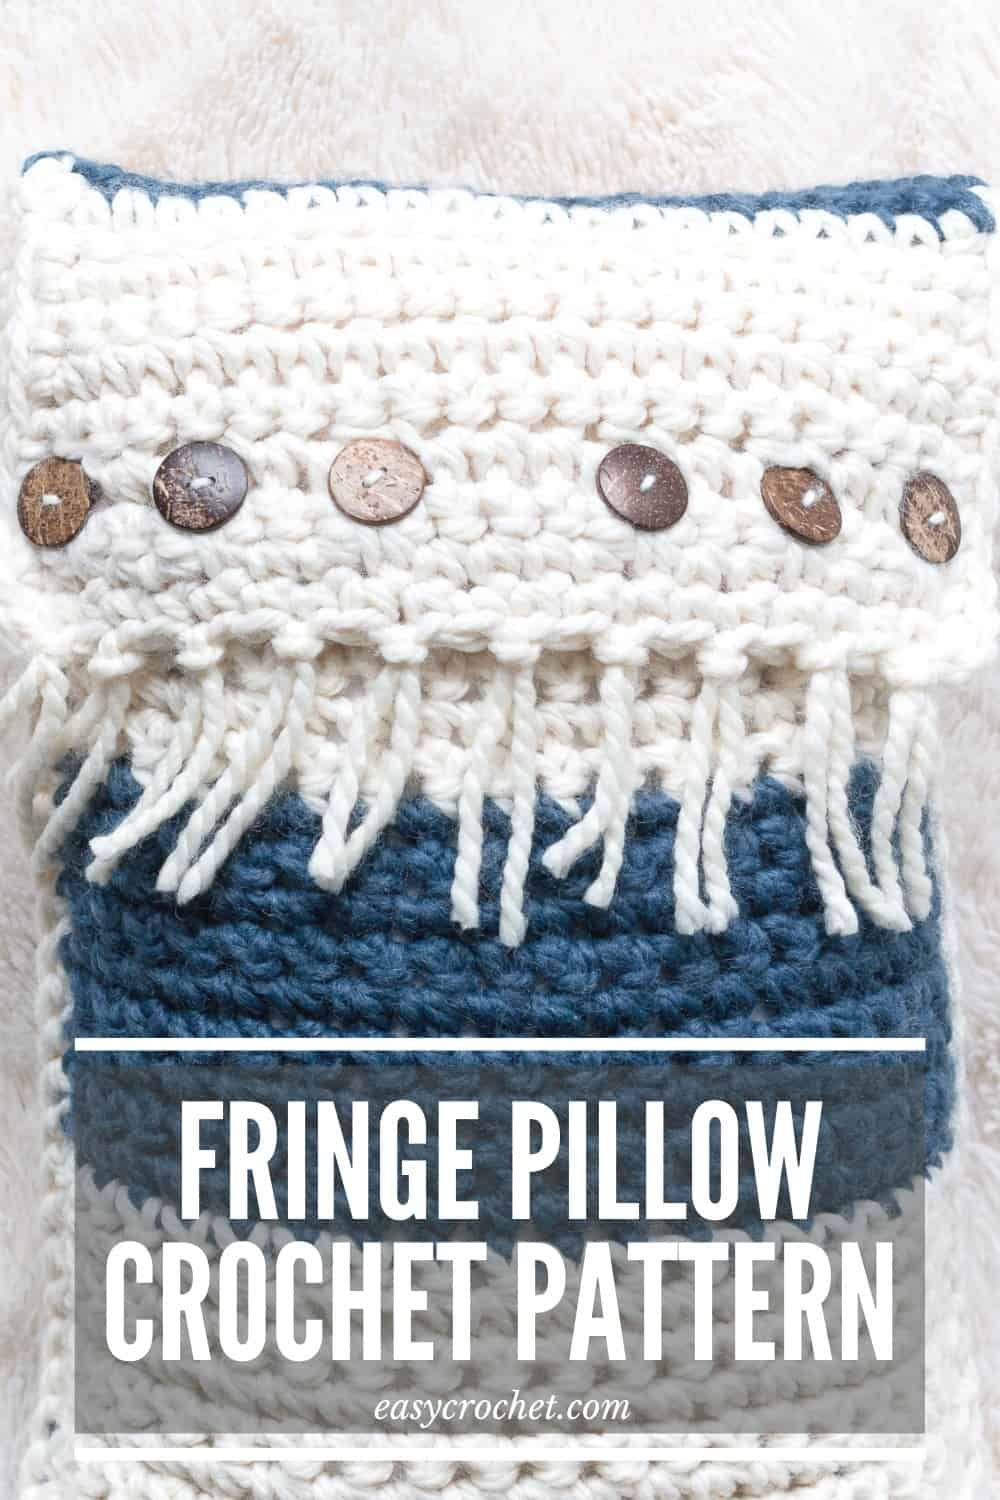 Zaffre Fringe Crochet Throw Pillow via @easycrochetcom